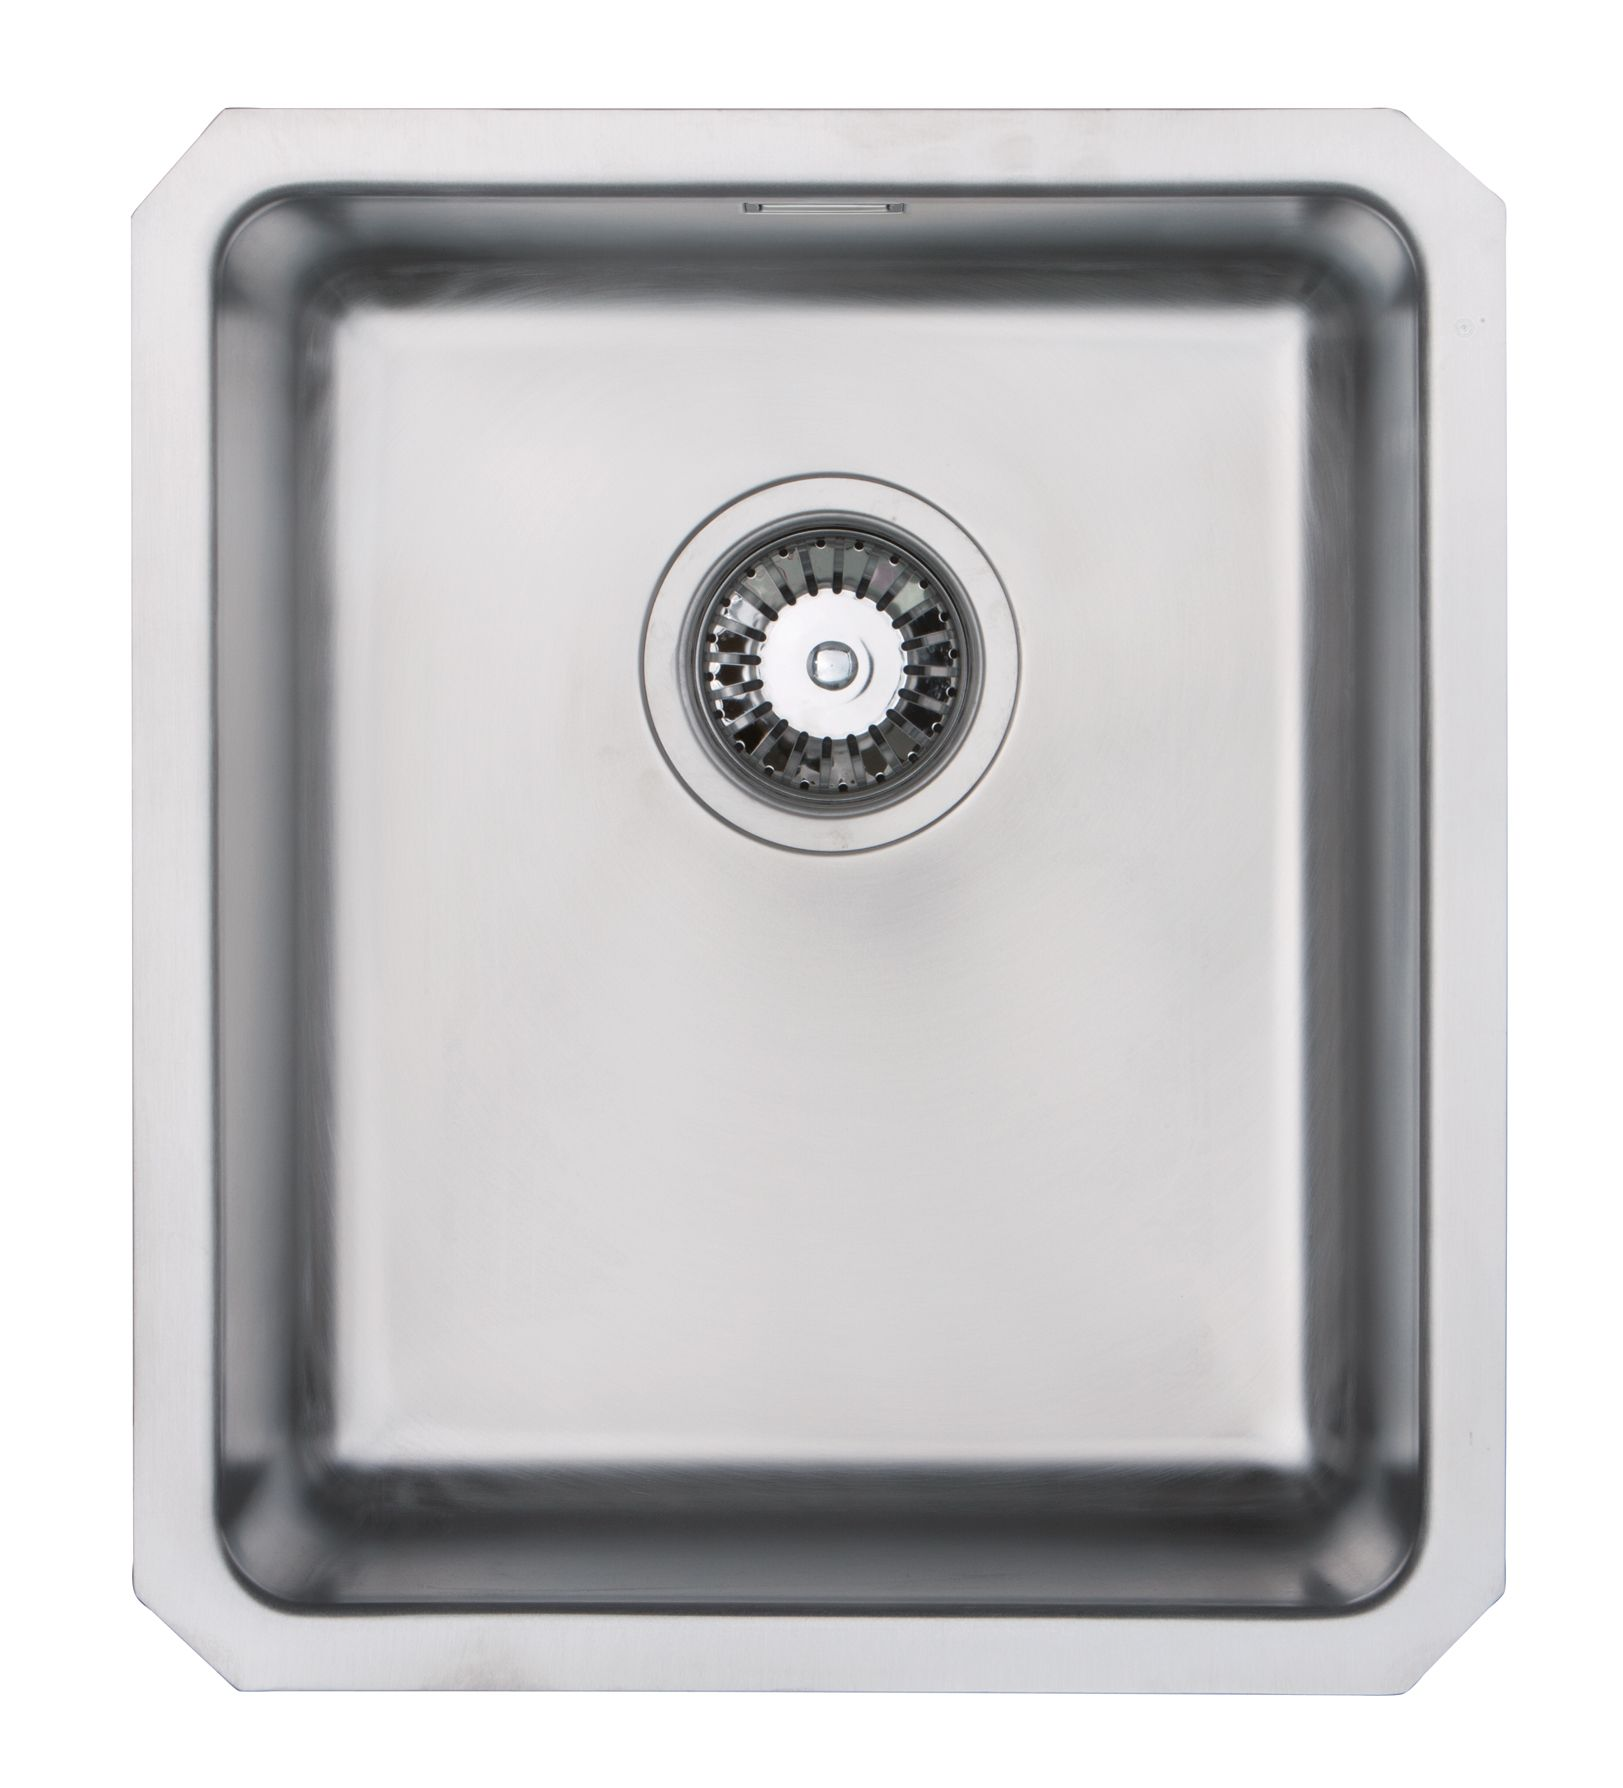 A Stylish Undermounted Sink X Compact Single Bowl From Worktop Express Manufactured High Quality Stainless Steel And Available On Next Day Delivery